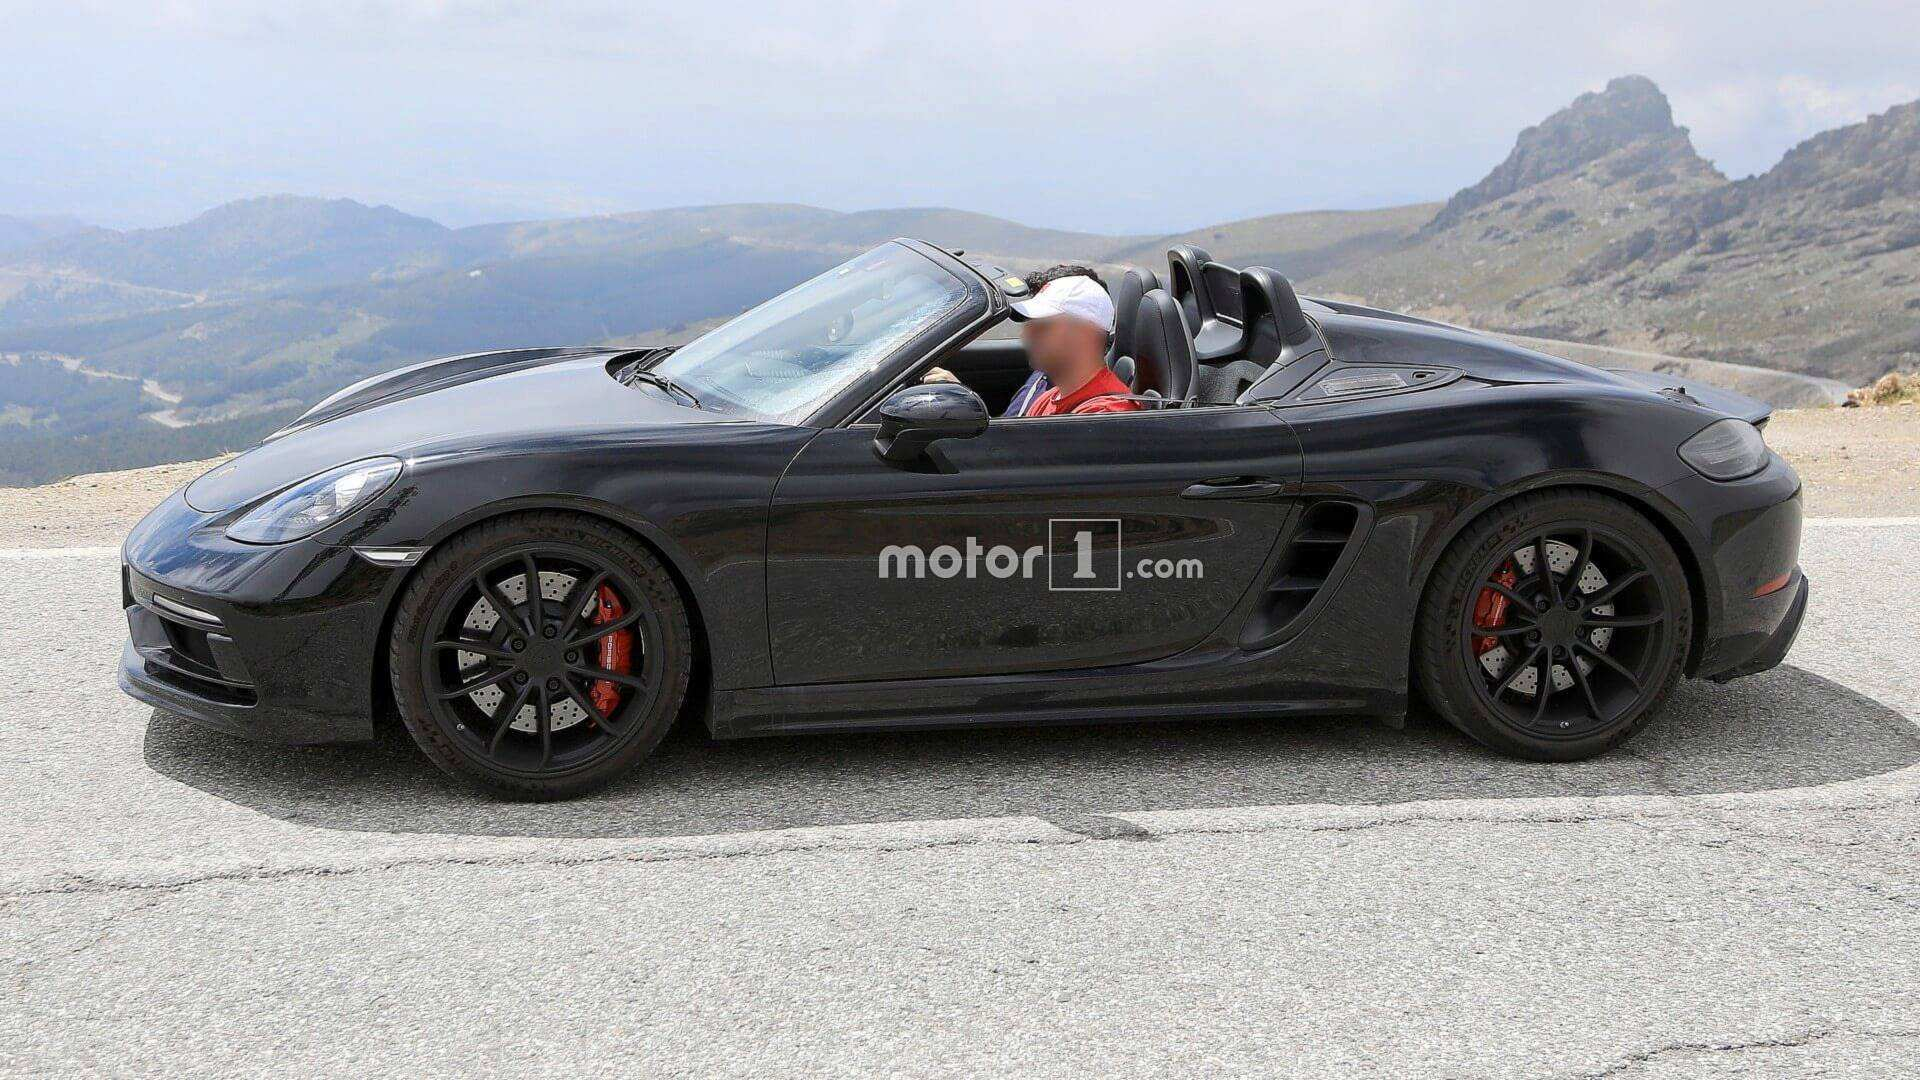 43 Best Review 2019 Porsche Boxster Spyder Interior for 2019 Porsche Boxster Spyder